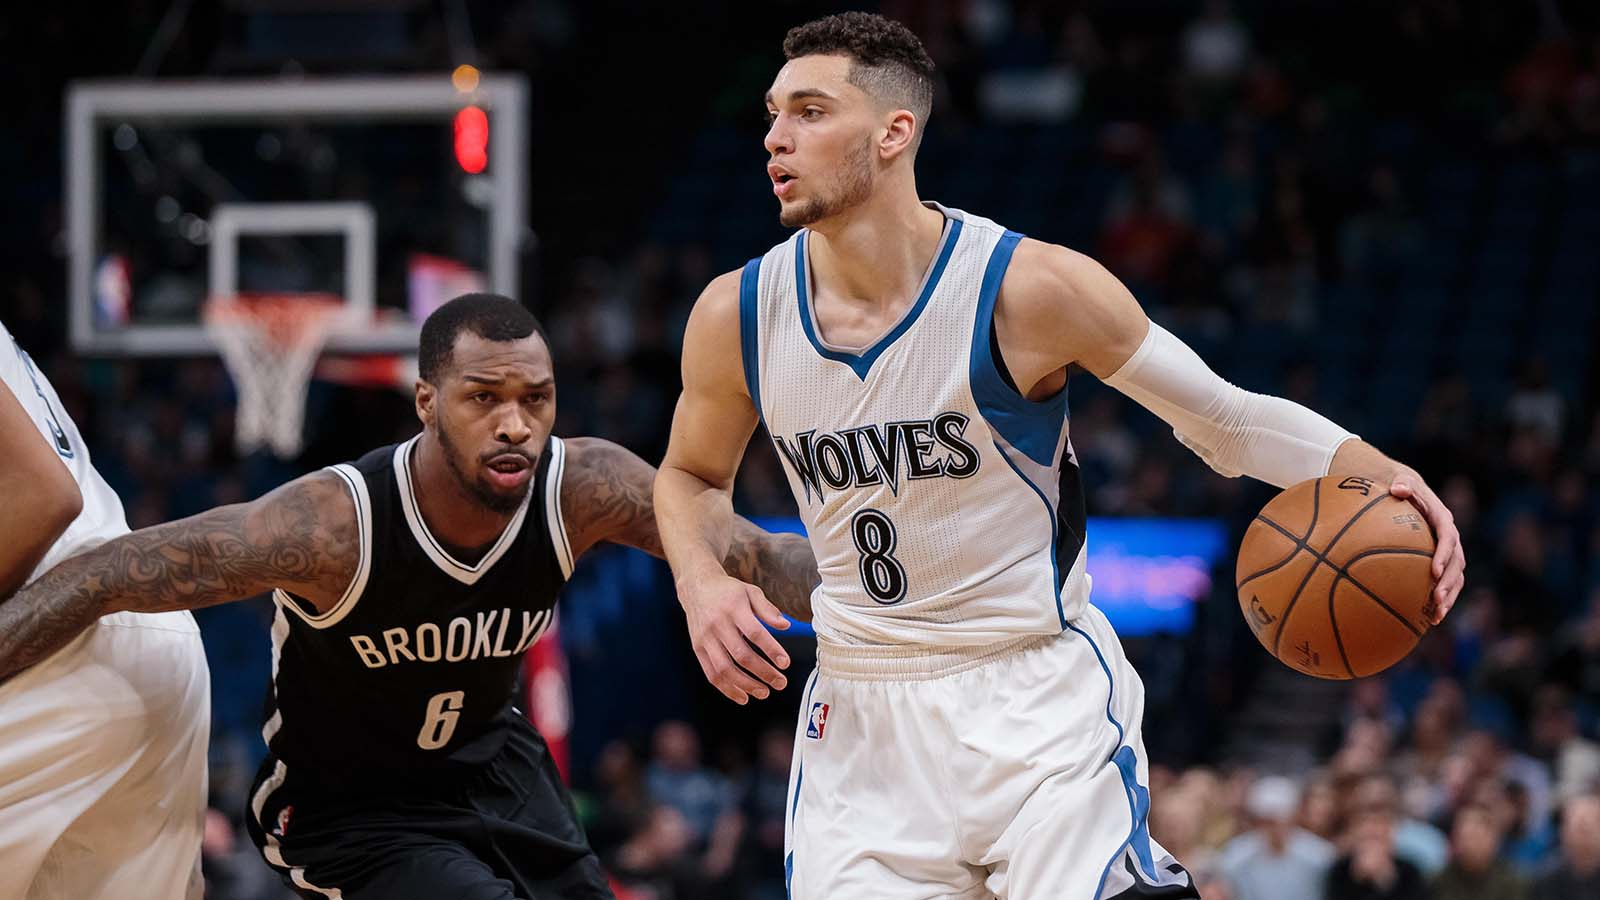 Wolves-Nets Twilights: LaVine hits first-half buzzer beater